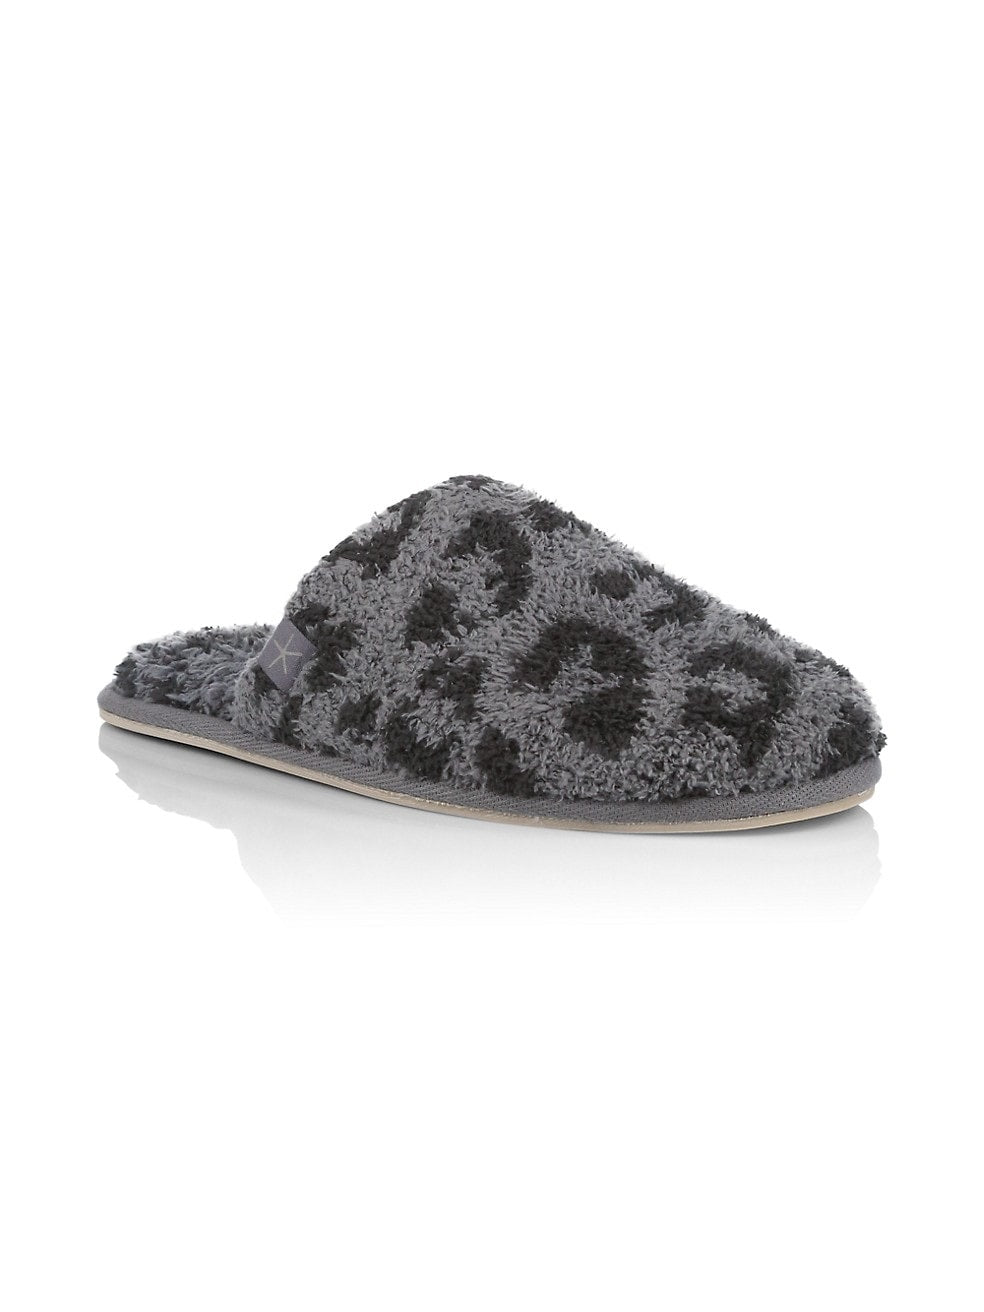 CozyChic® Barefoot in the Wild® SlippersColor Graphite - Carbon